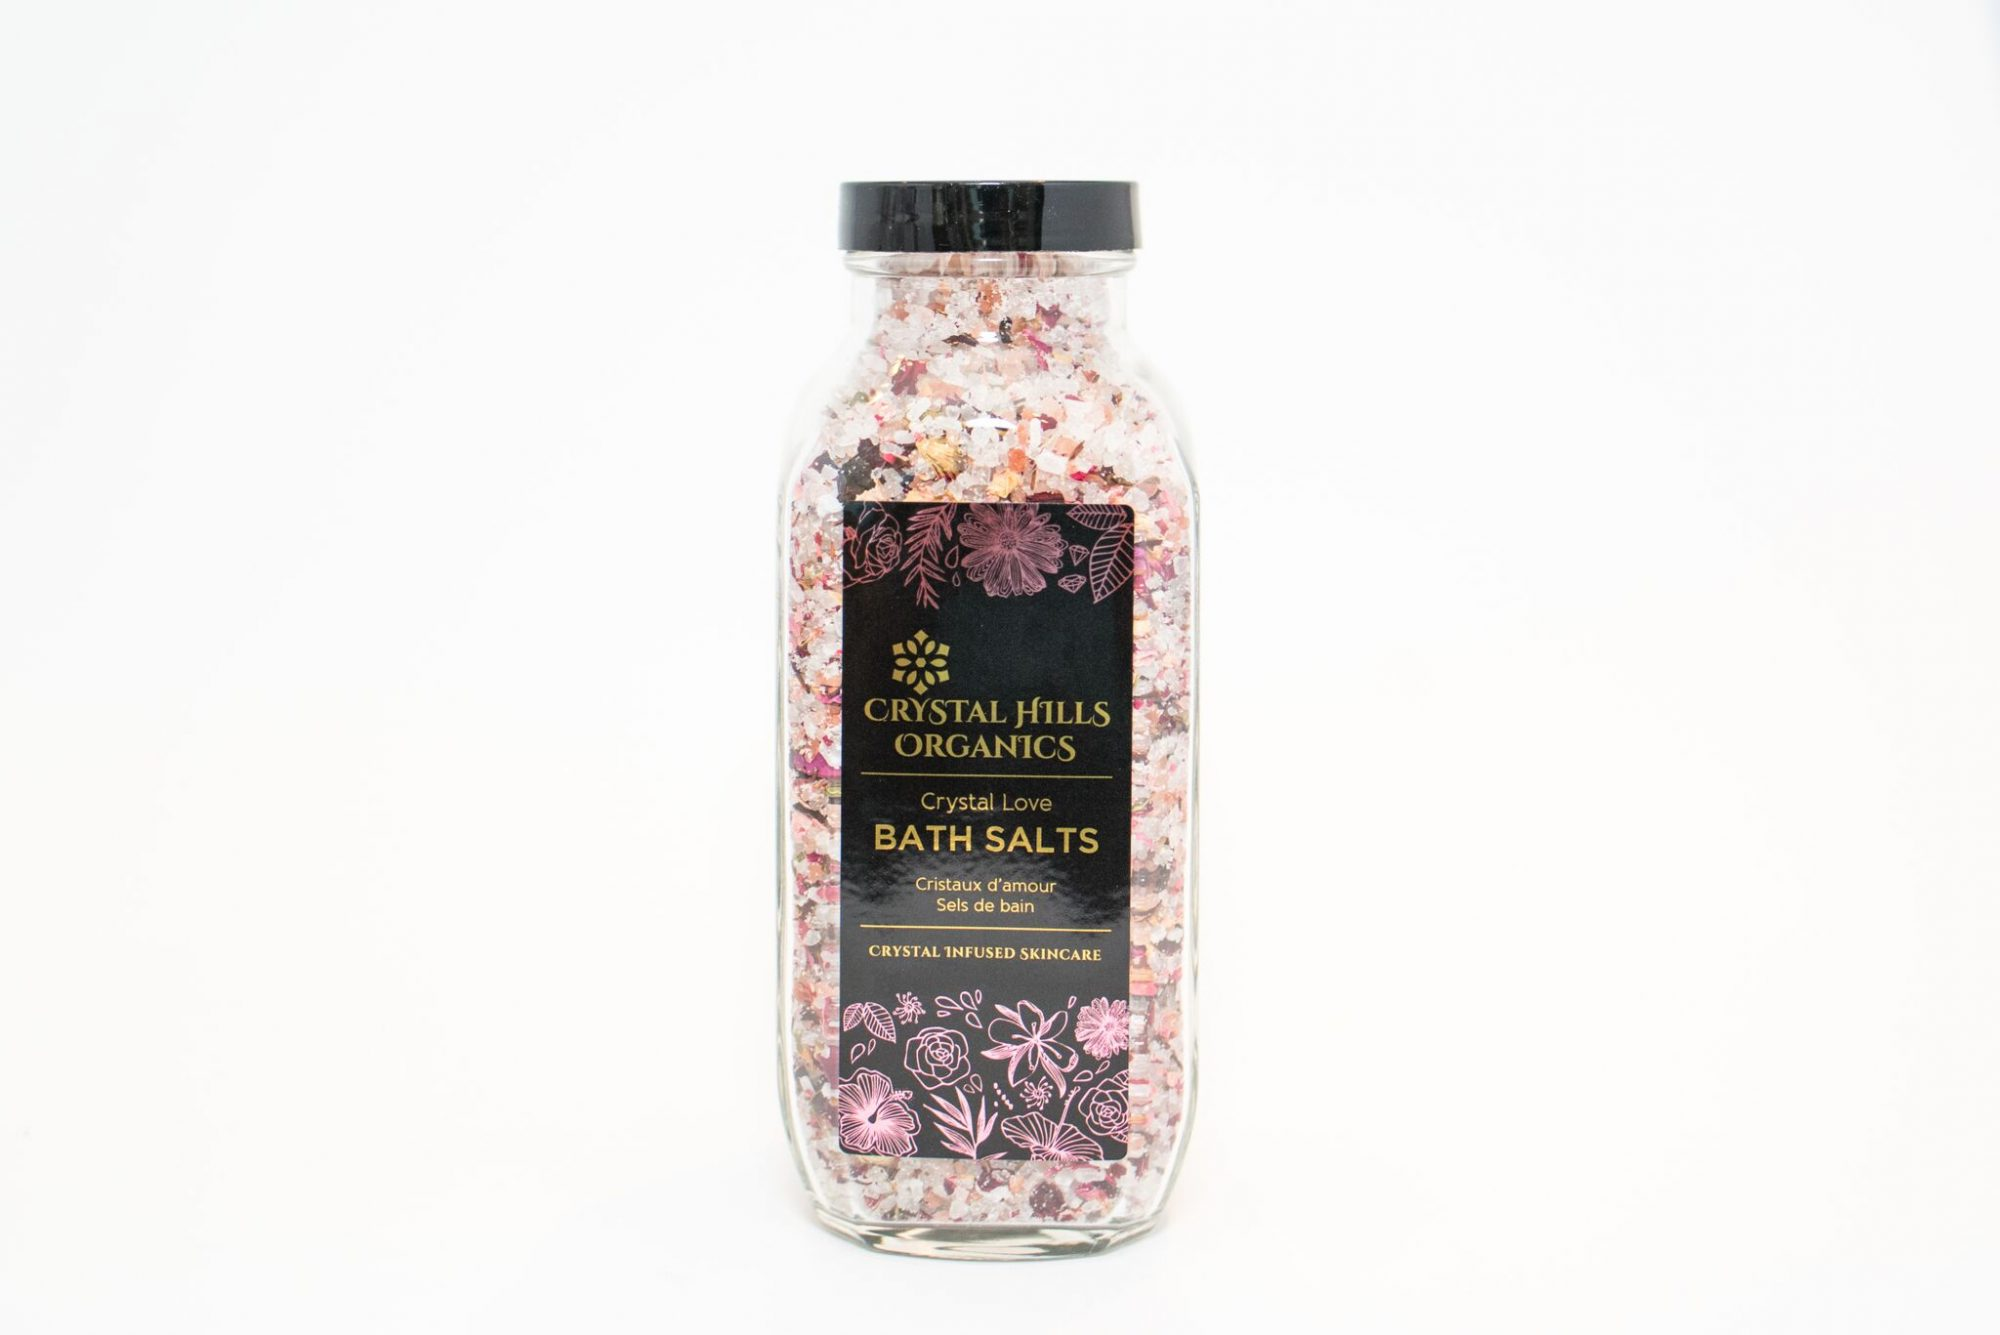 Crystal Hills - Crystal Love Bath Salts, $40